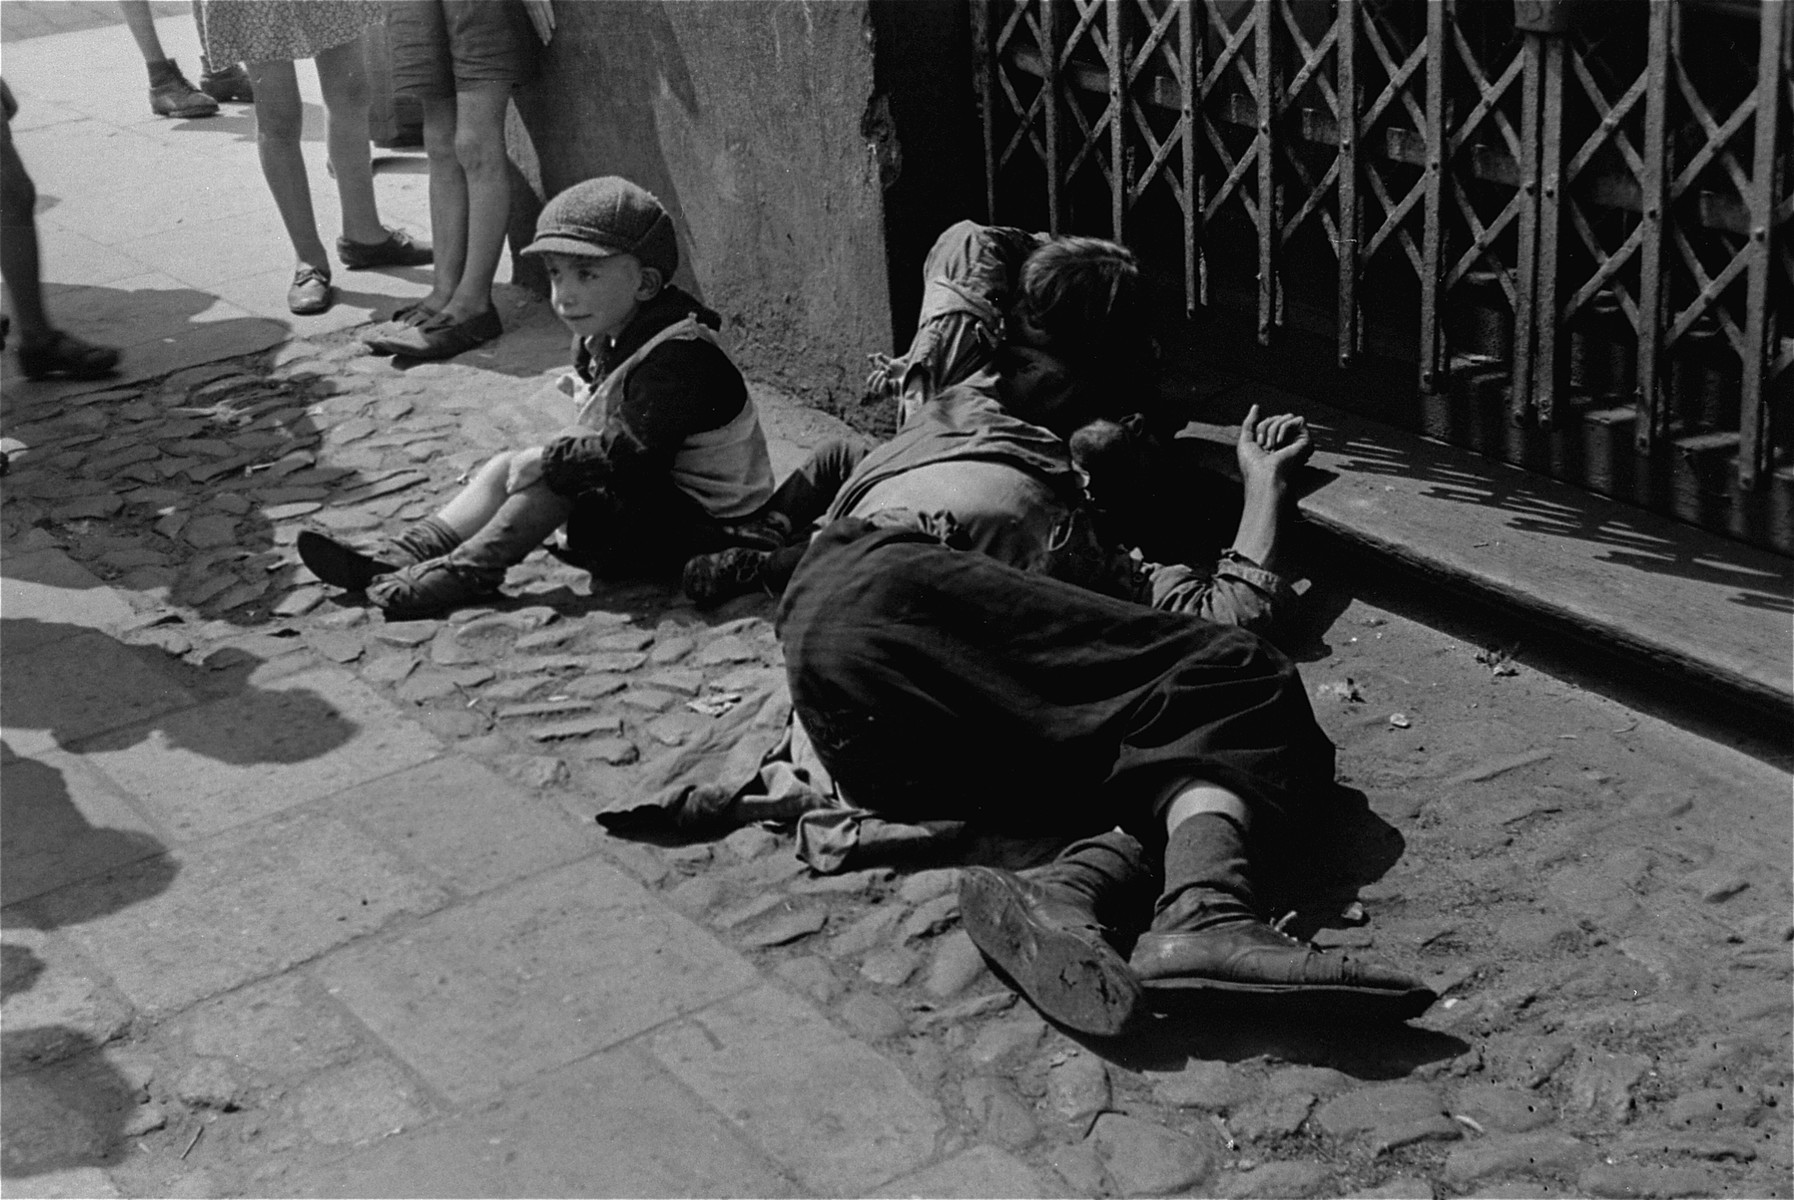 A destitute father and his two children sit on the street in the Warsaw ghetto.